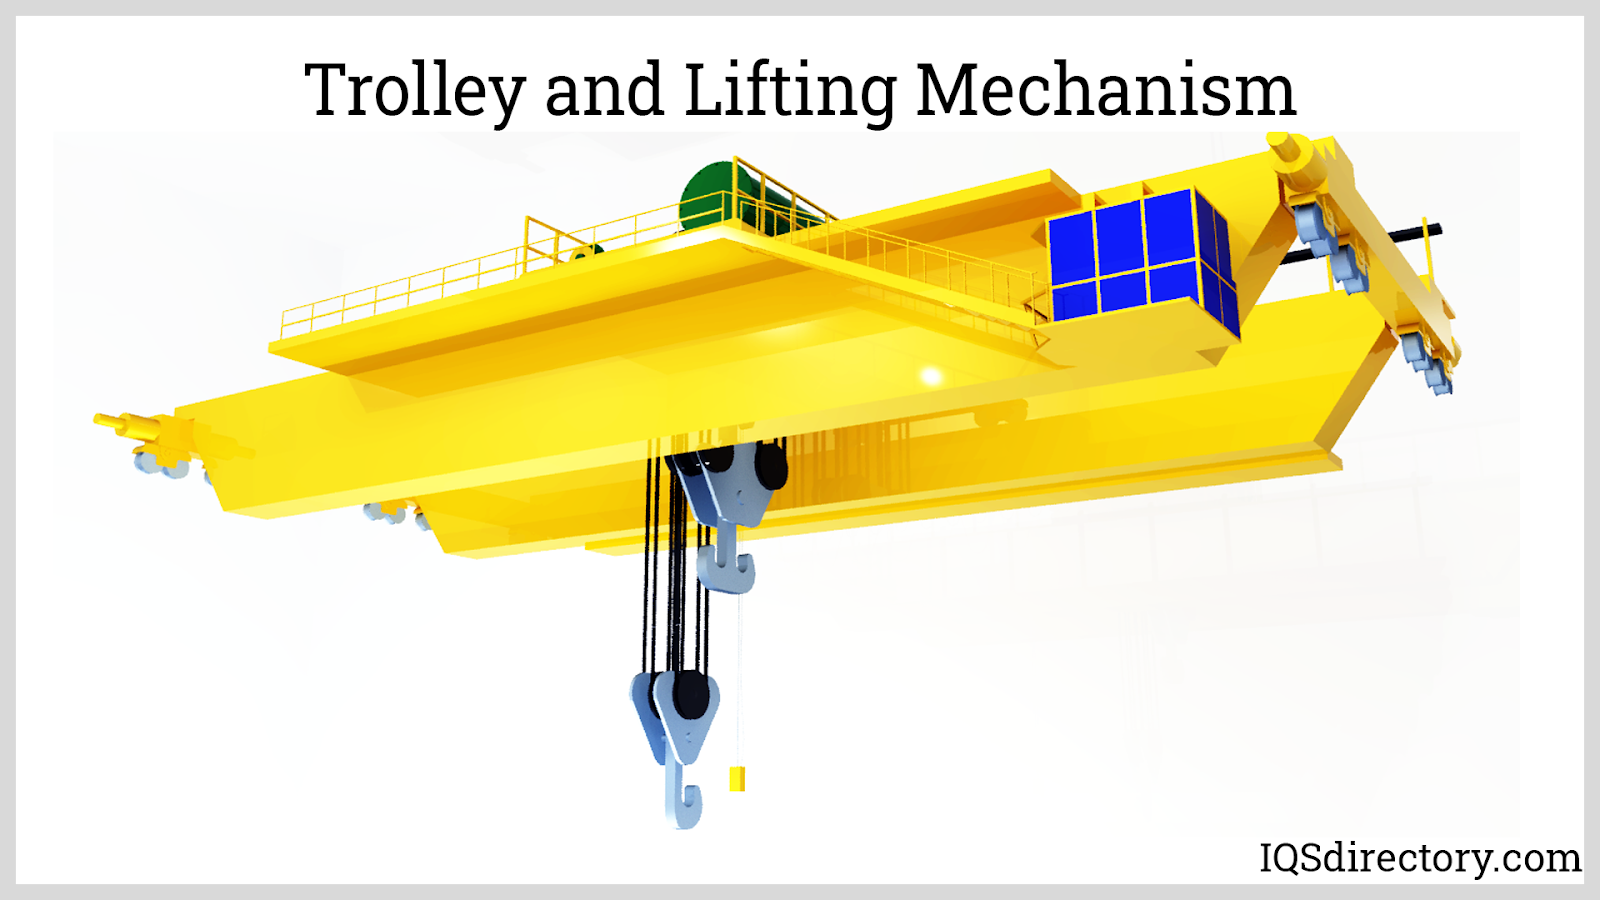 Trolley and Lifting Mechanism